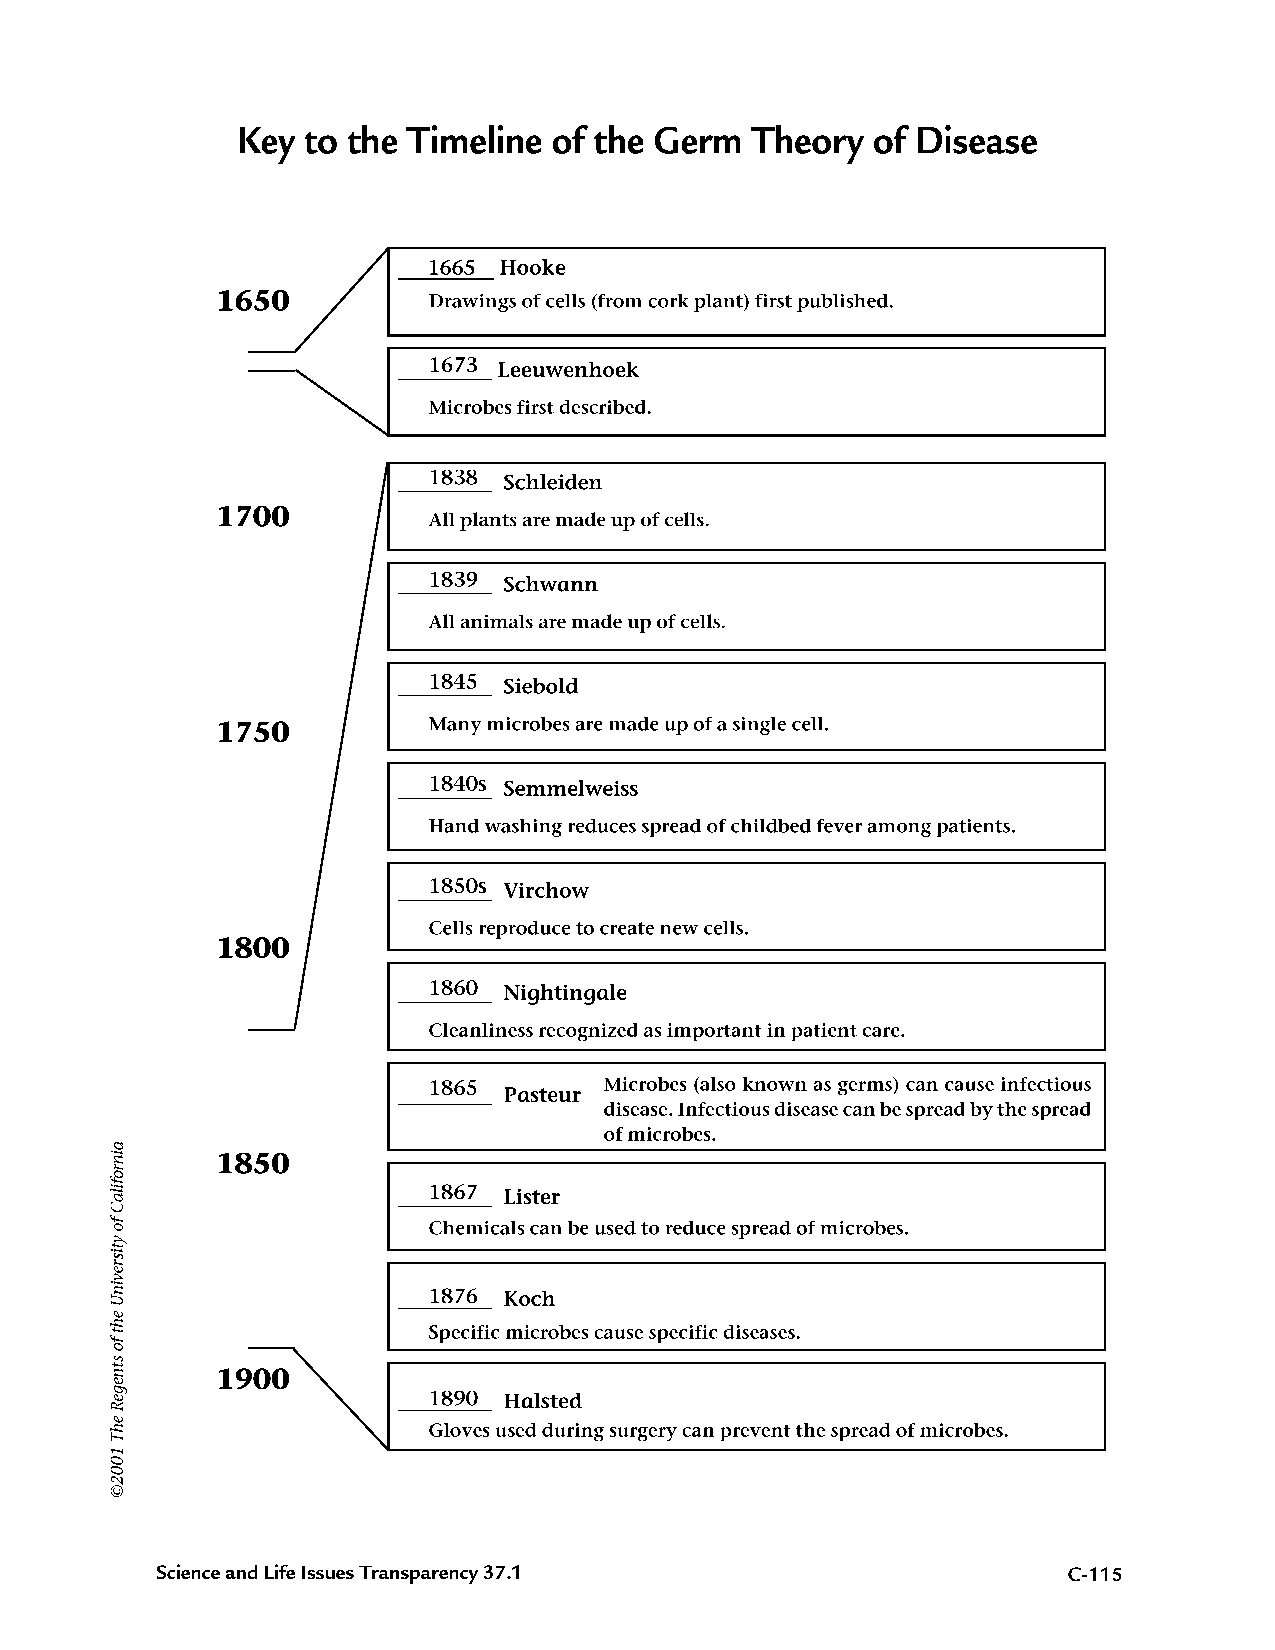 Key To The Timeline Of The Germ Theory Of Disease